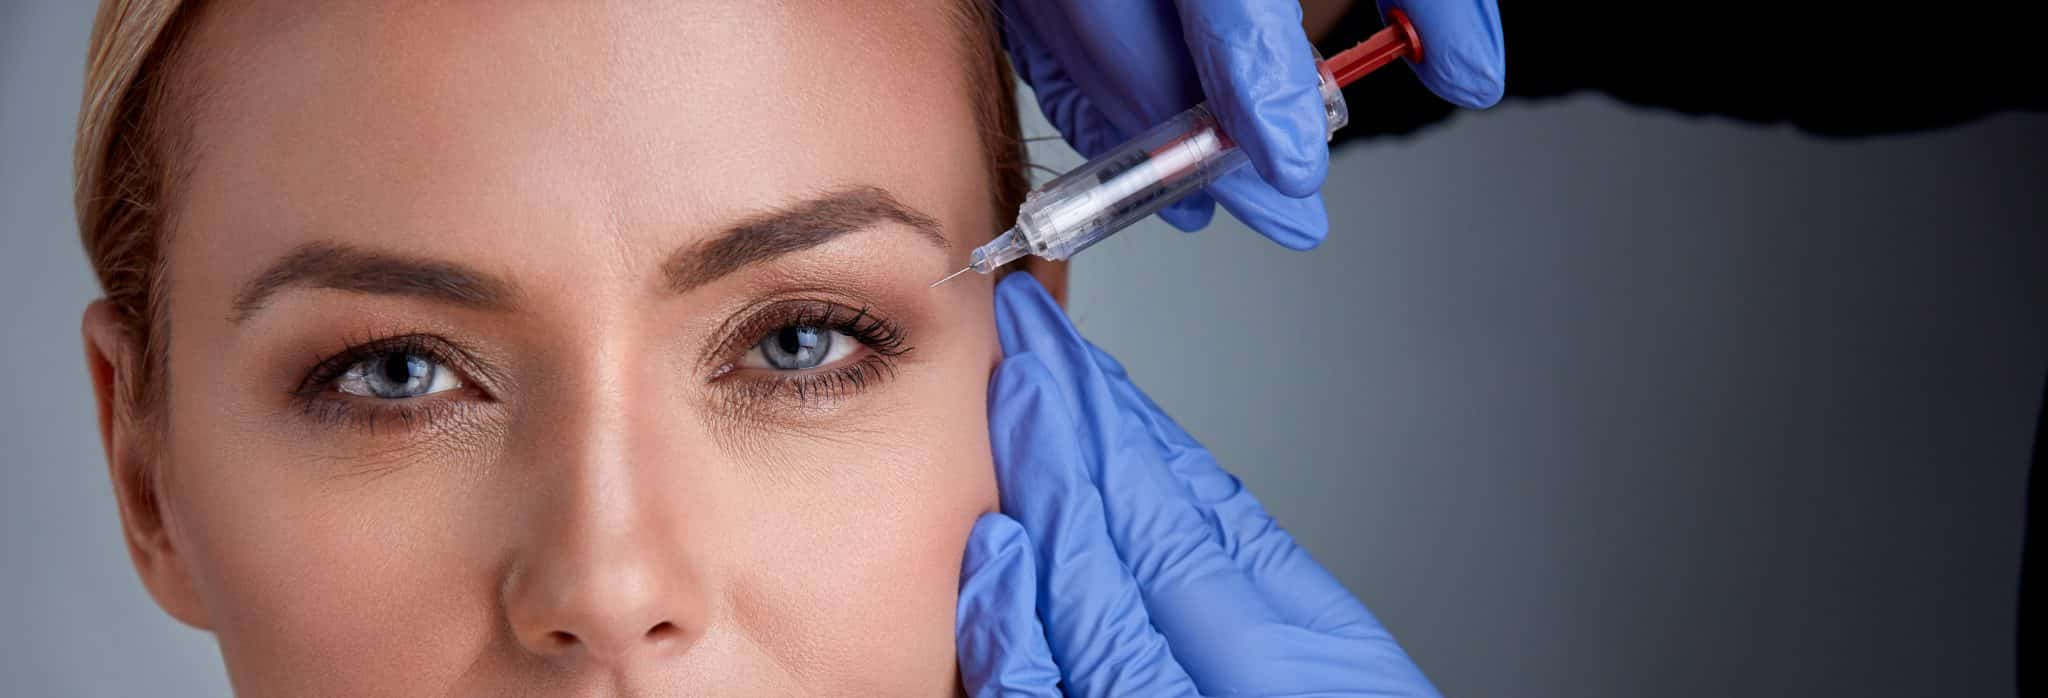 Woman receiving botox procedure by doctor